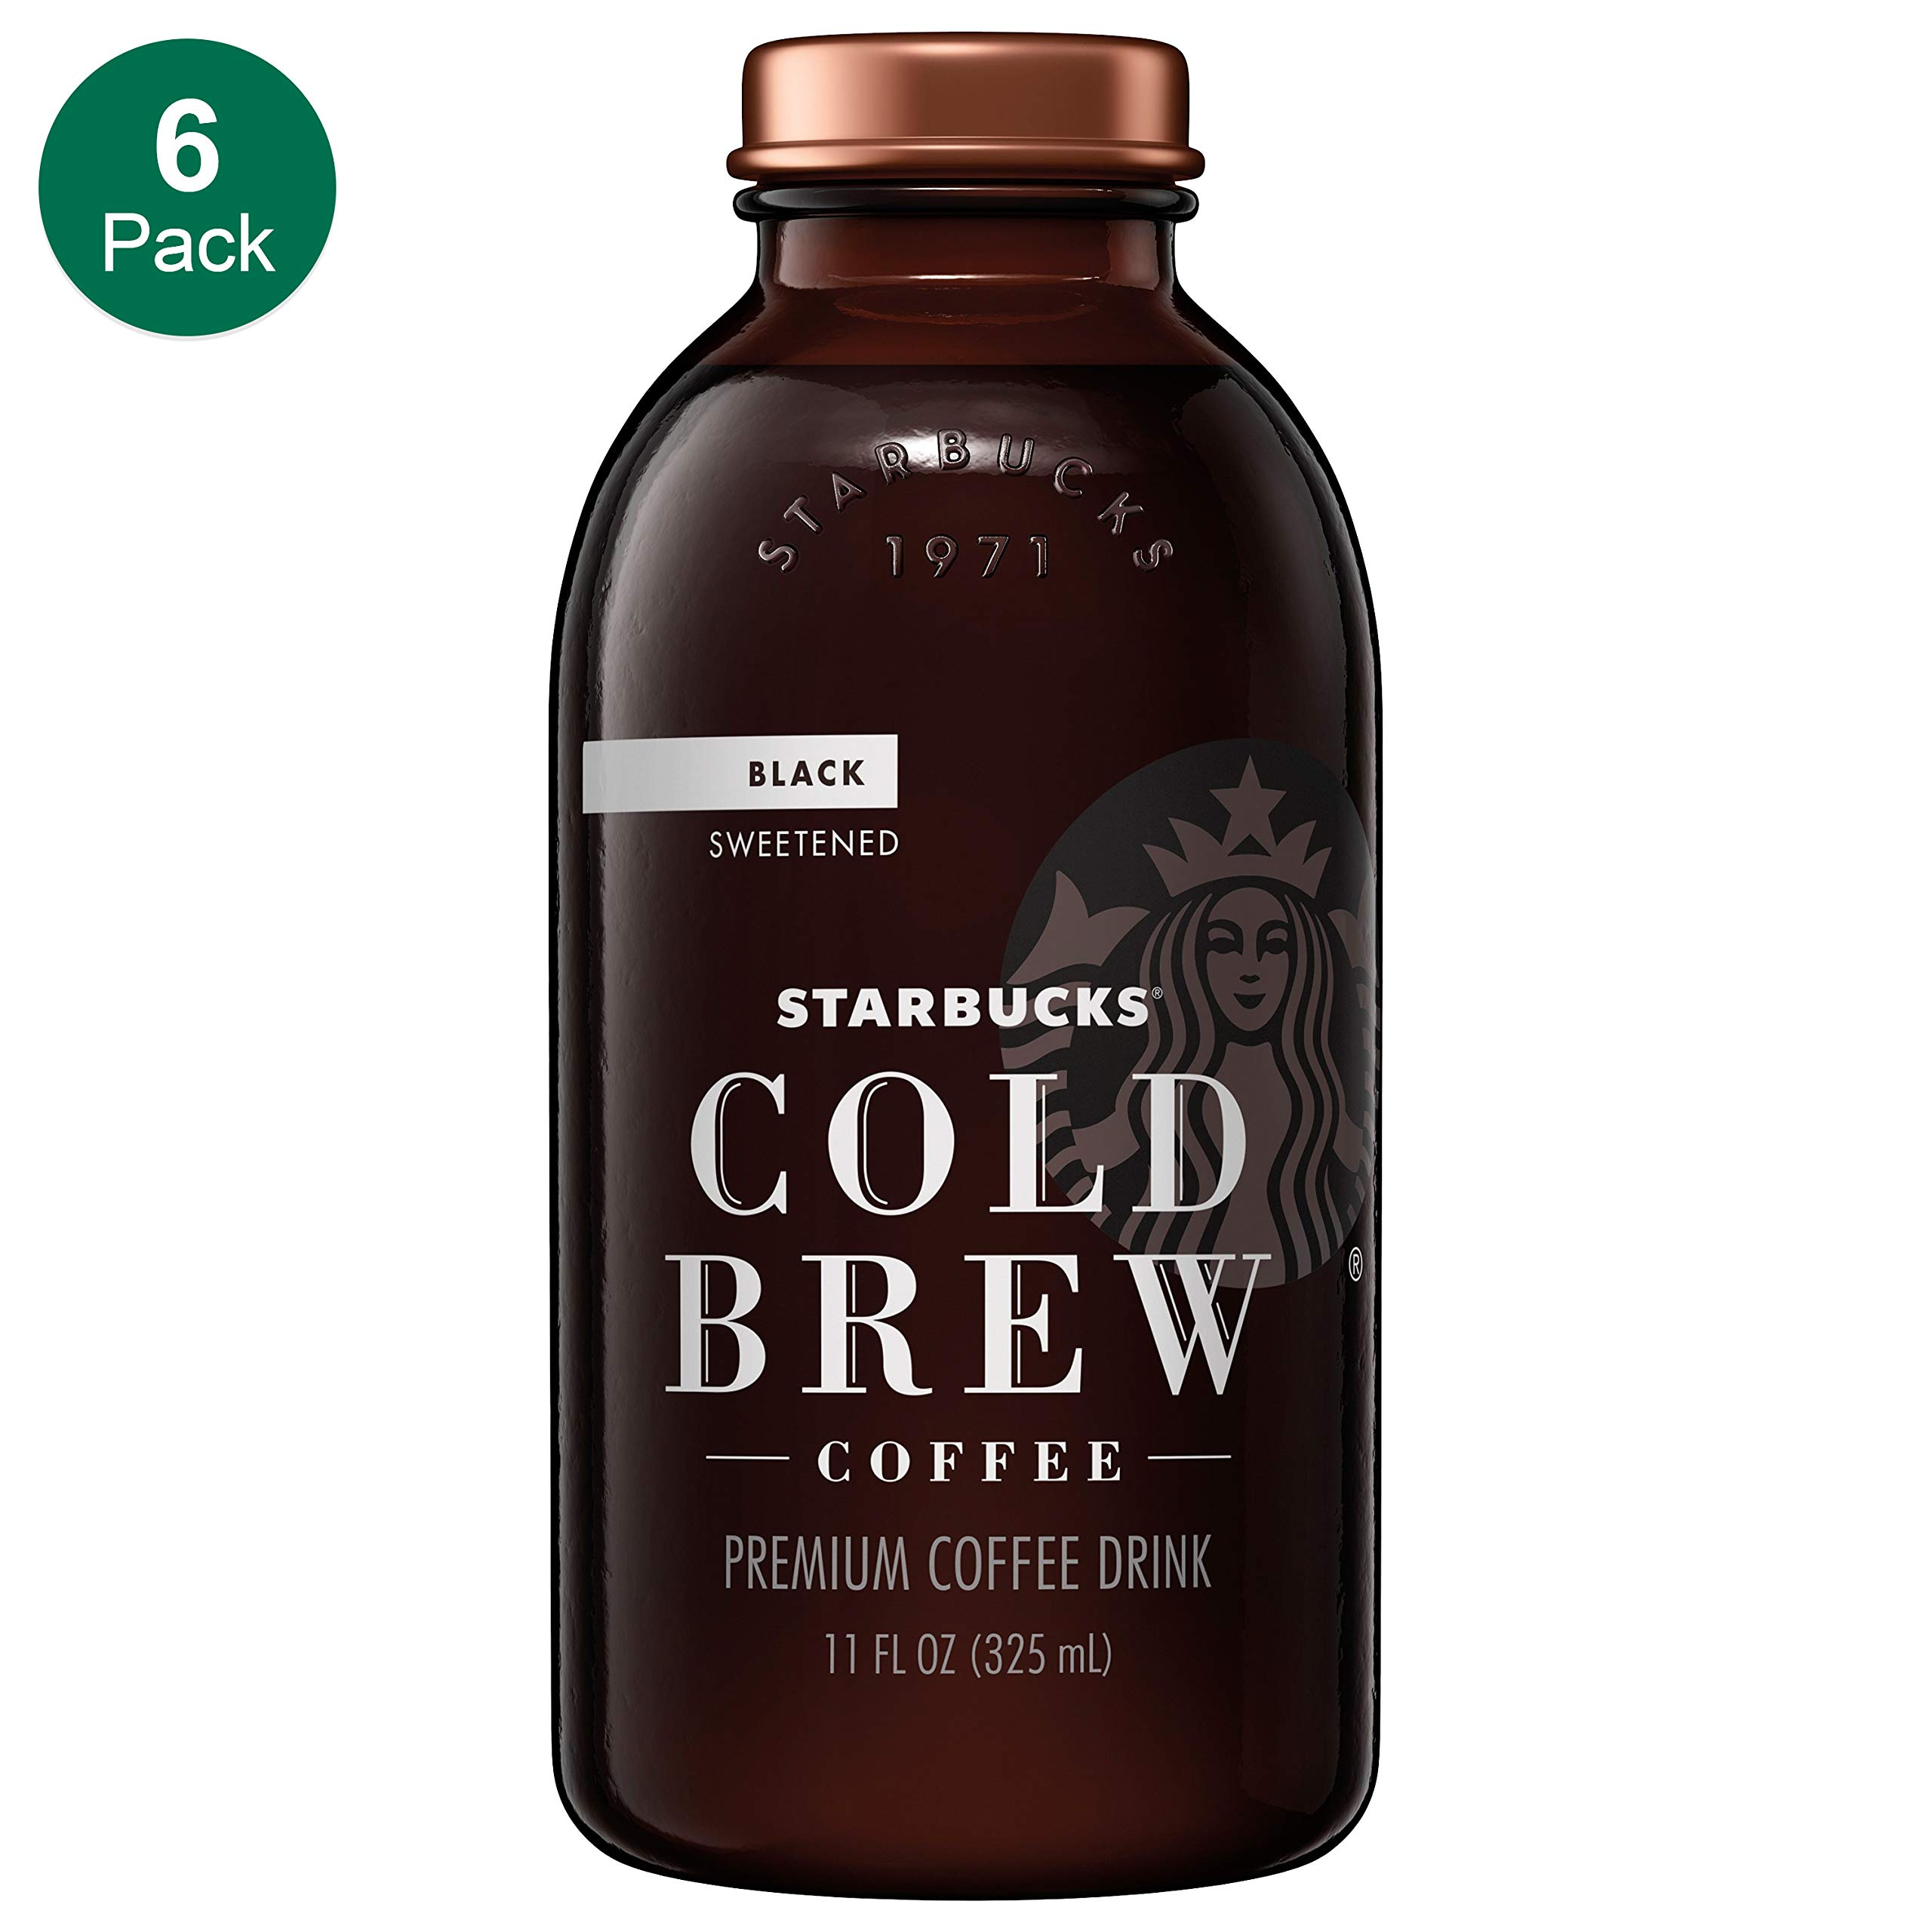 Starbucks Cold Brew Coffee, Black Sweetened, 11 oz Glass Bottles, 6 Count by Starbucks